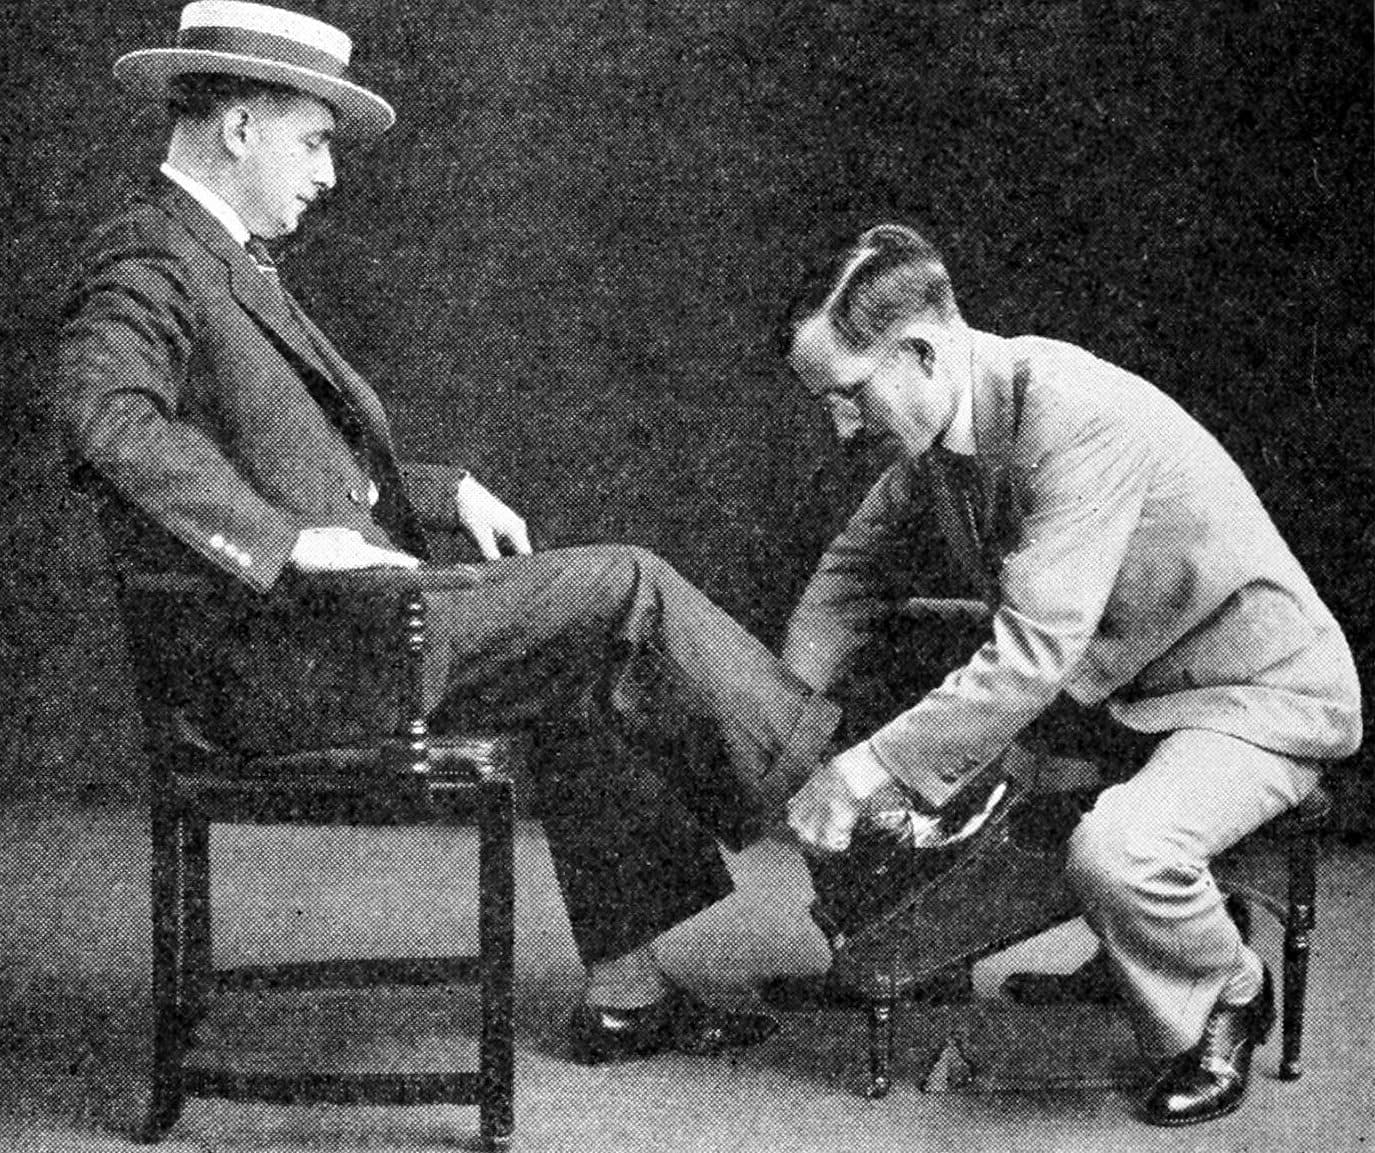 Man trying on shoes in the 1920s